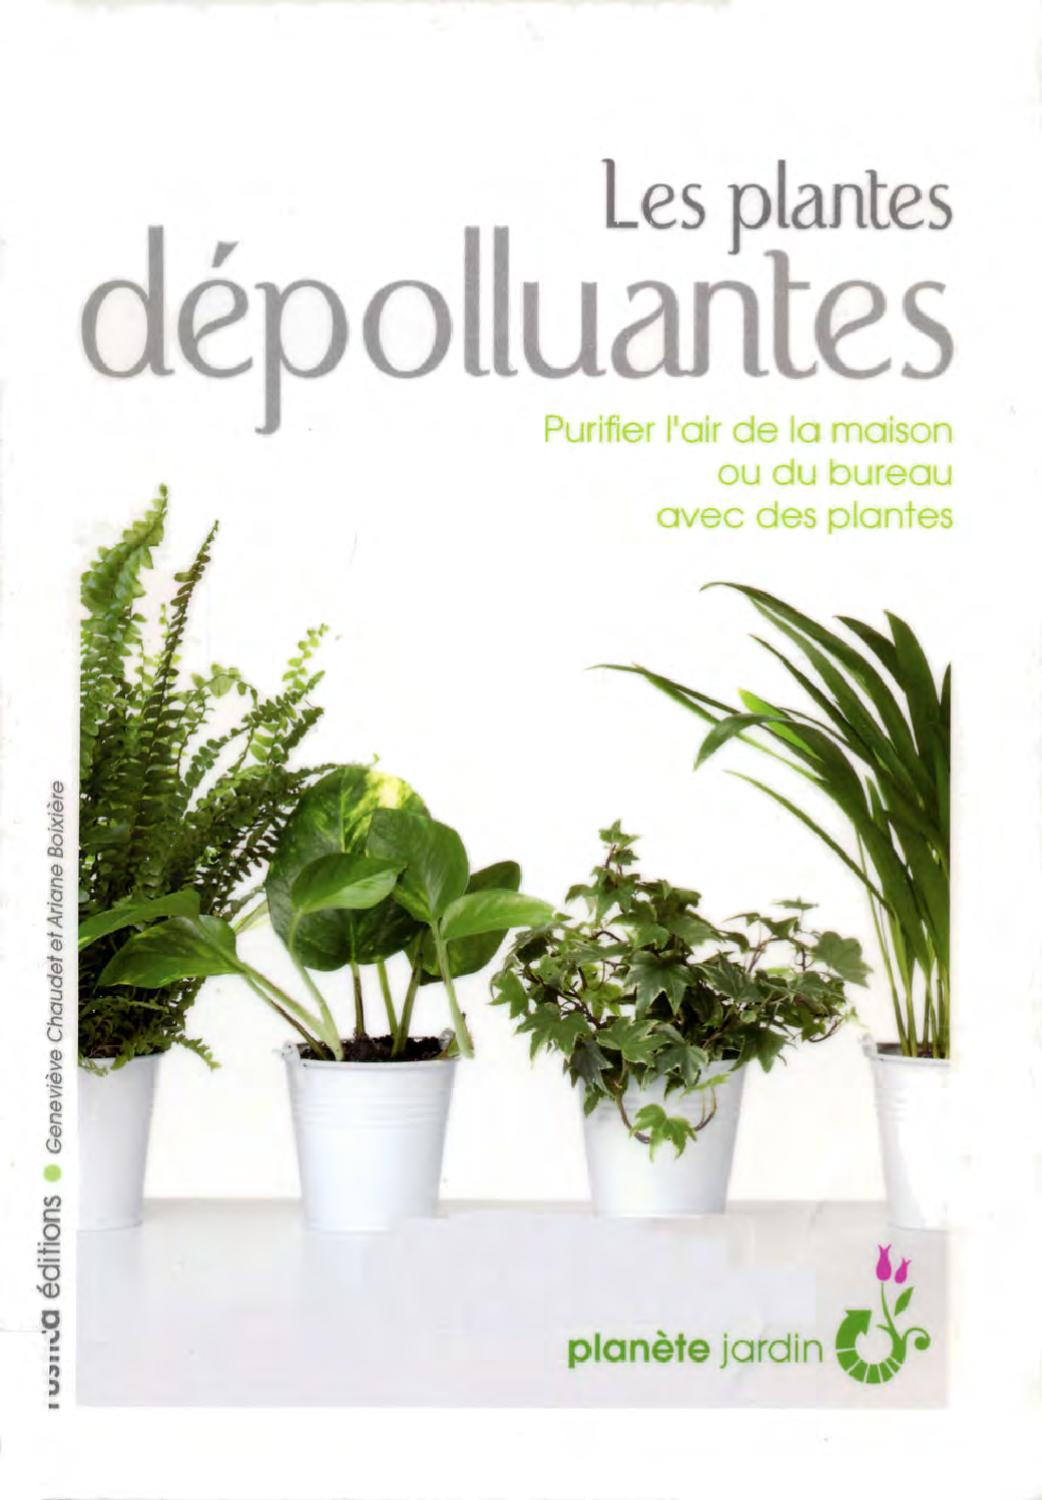 les plantes depolluantes by carrascosa francine issuu